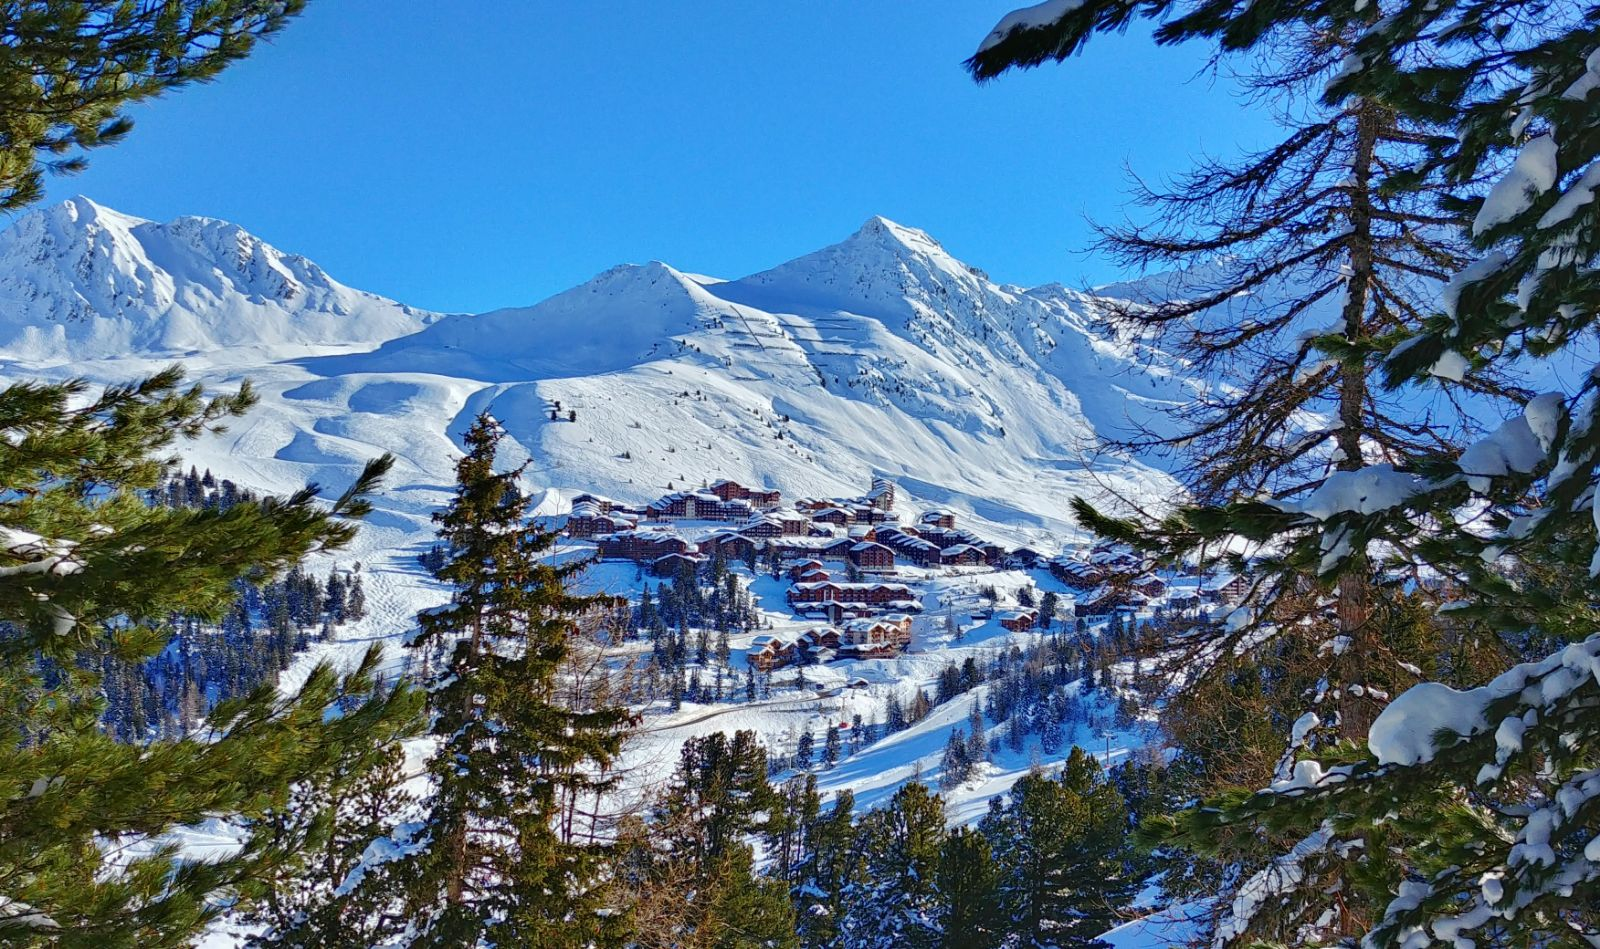 View on snowy French Alps and wooden chalets